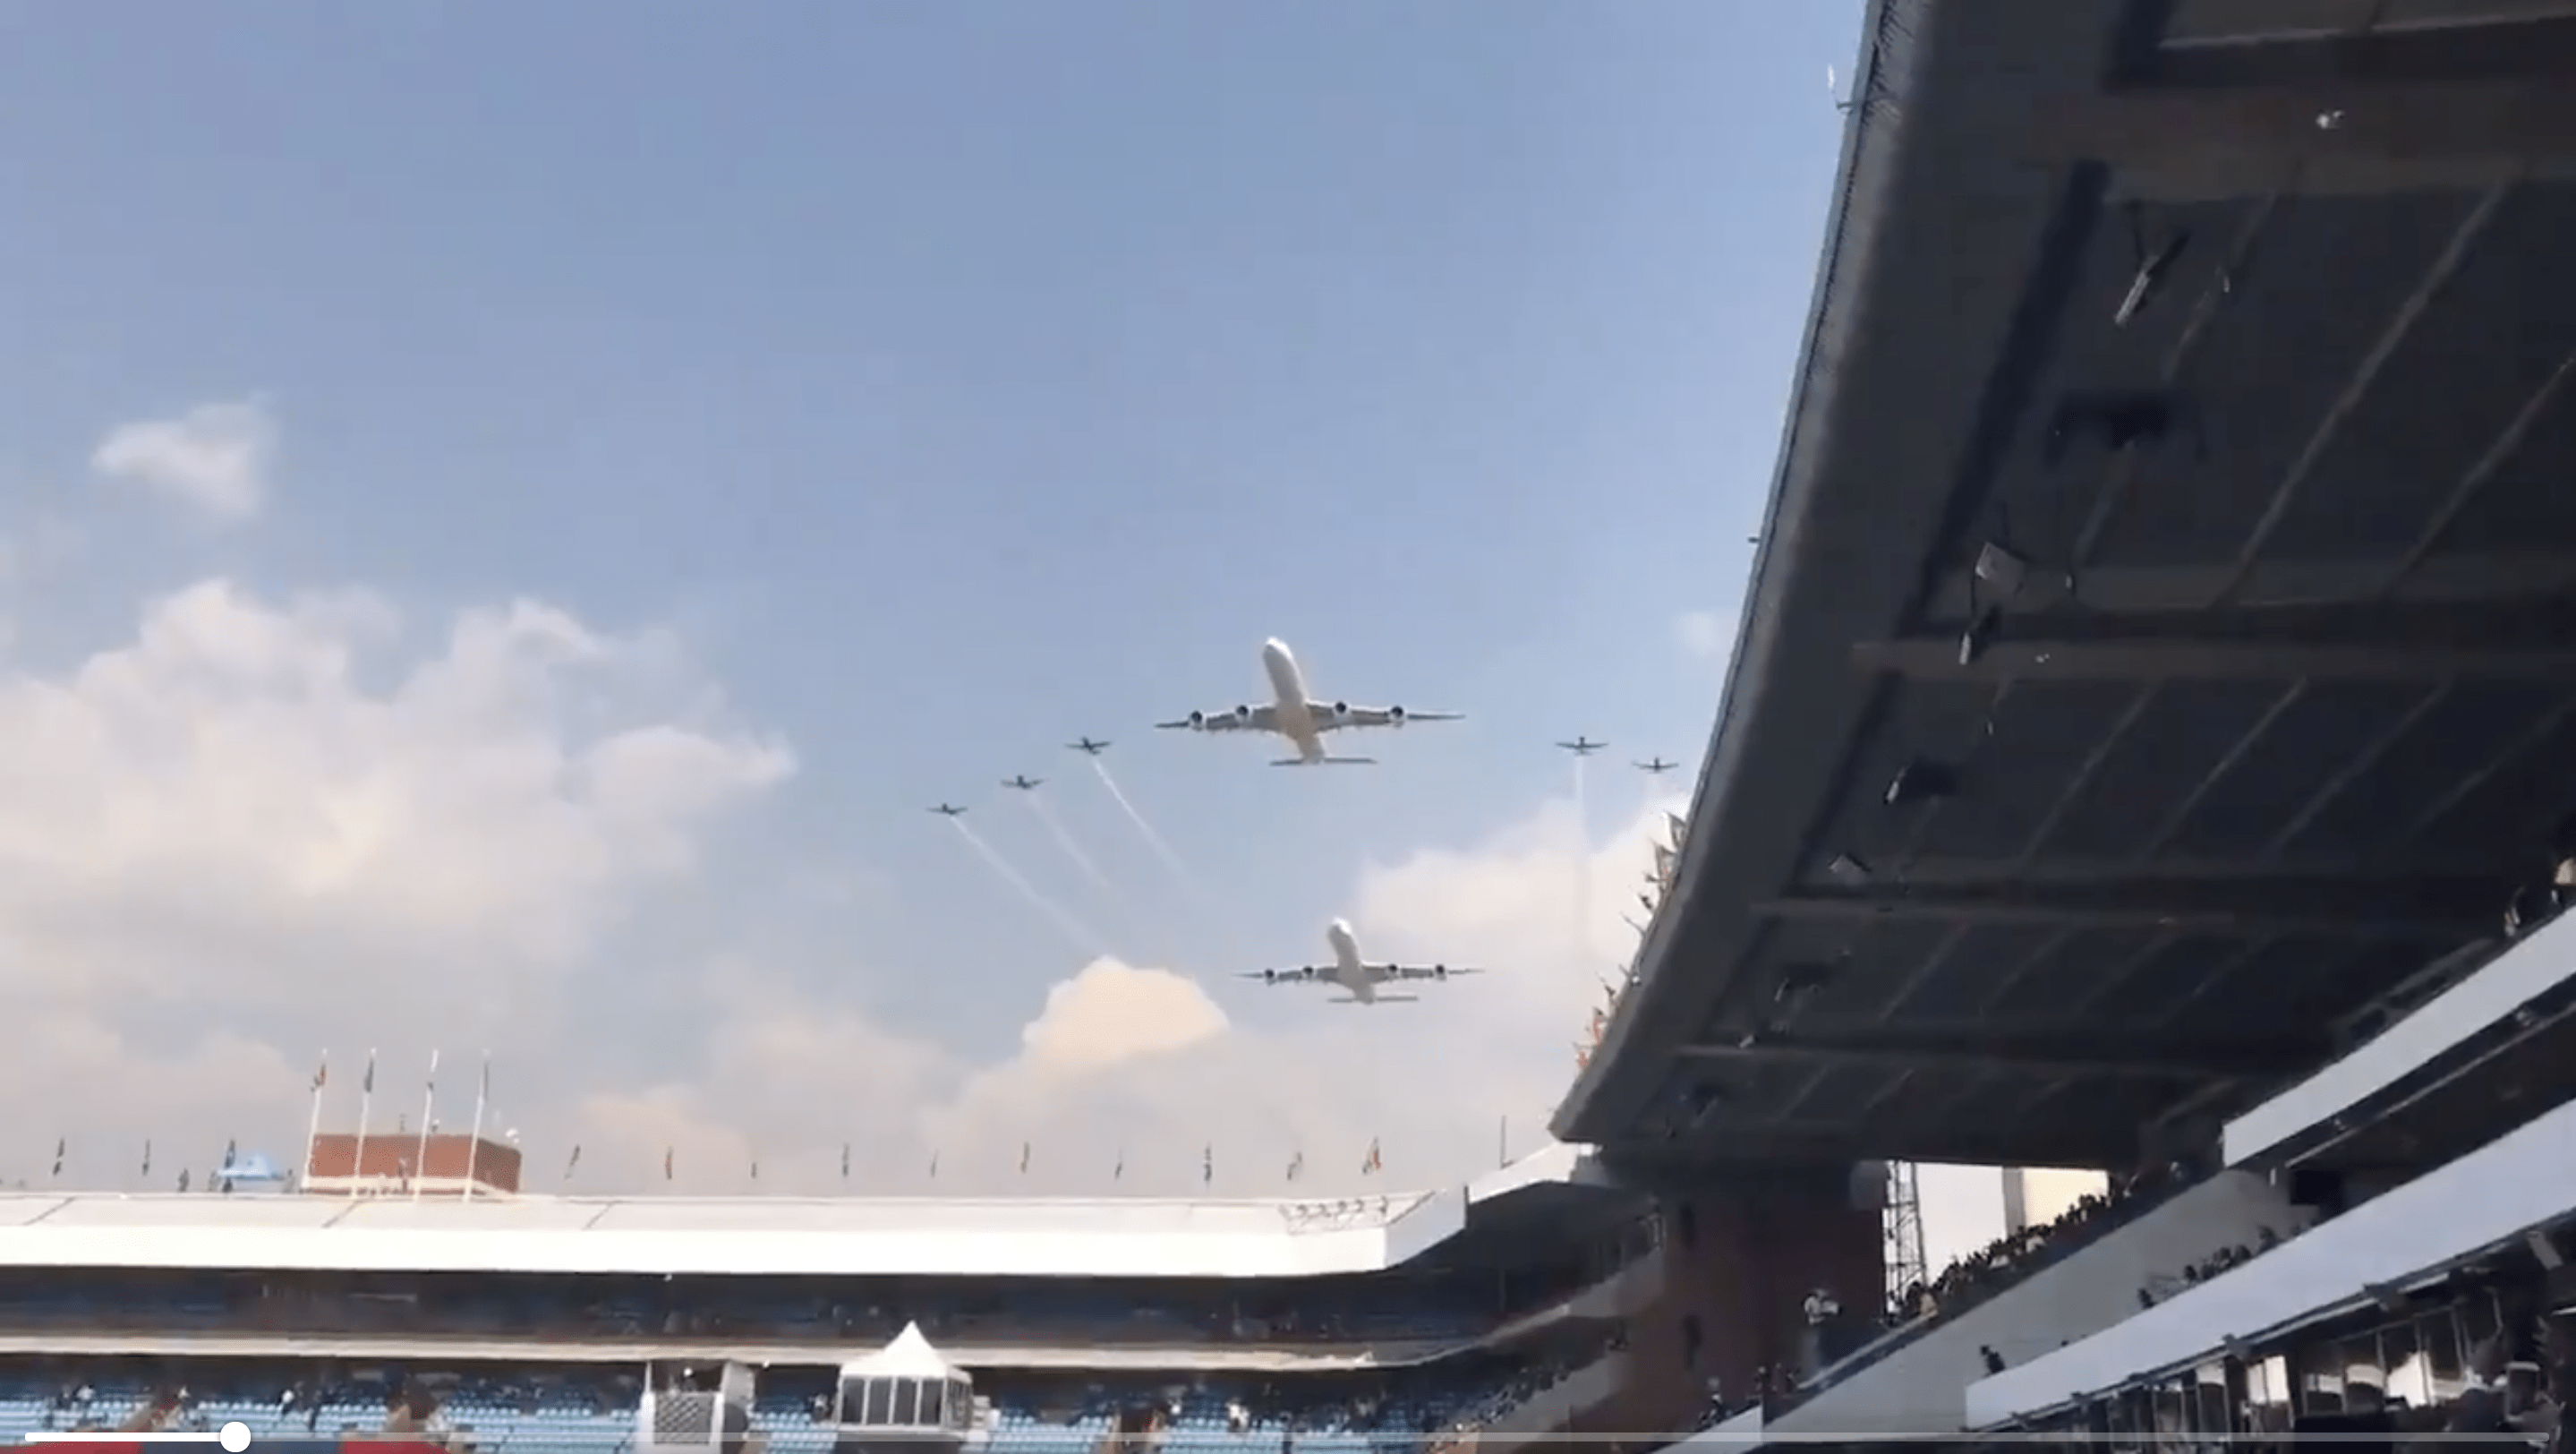 Watch Airbus A340s Perform a Stunning Flyby Over a South African Stadium